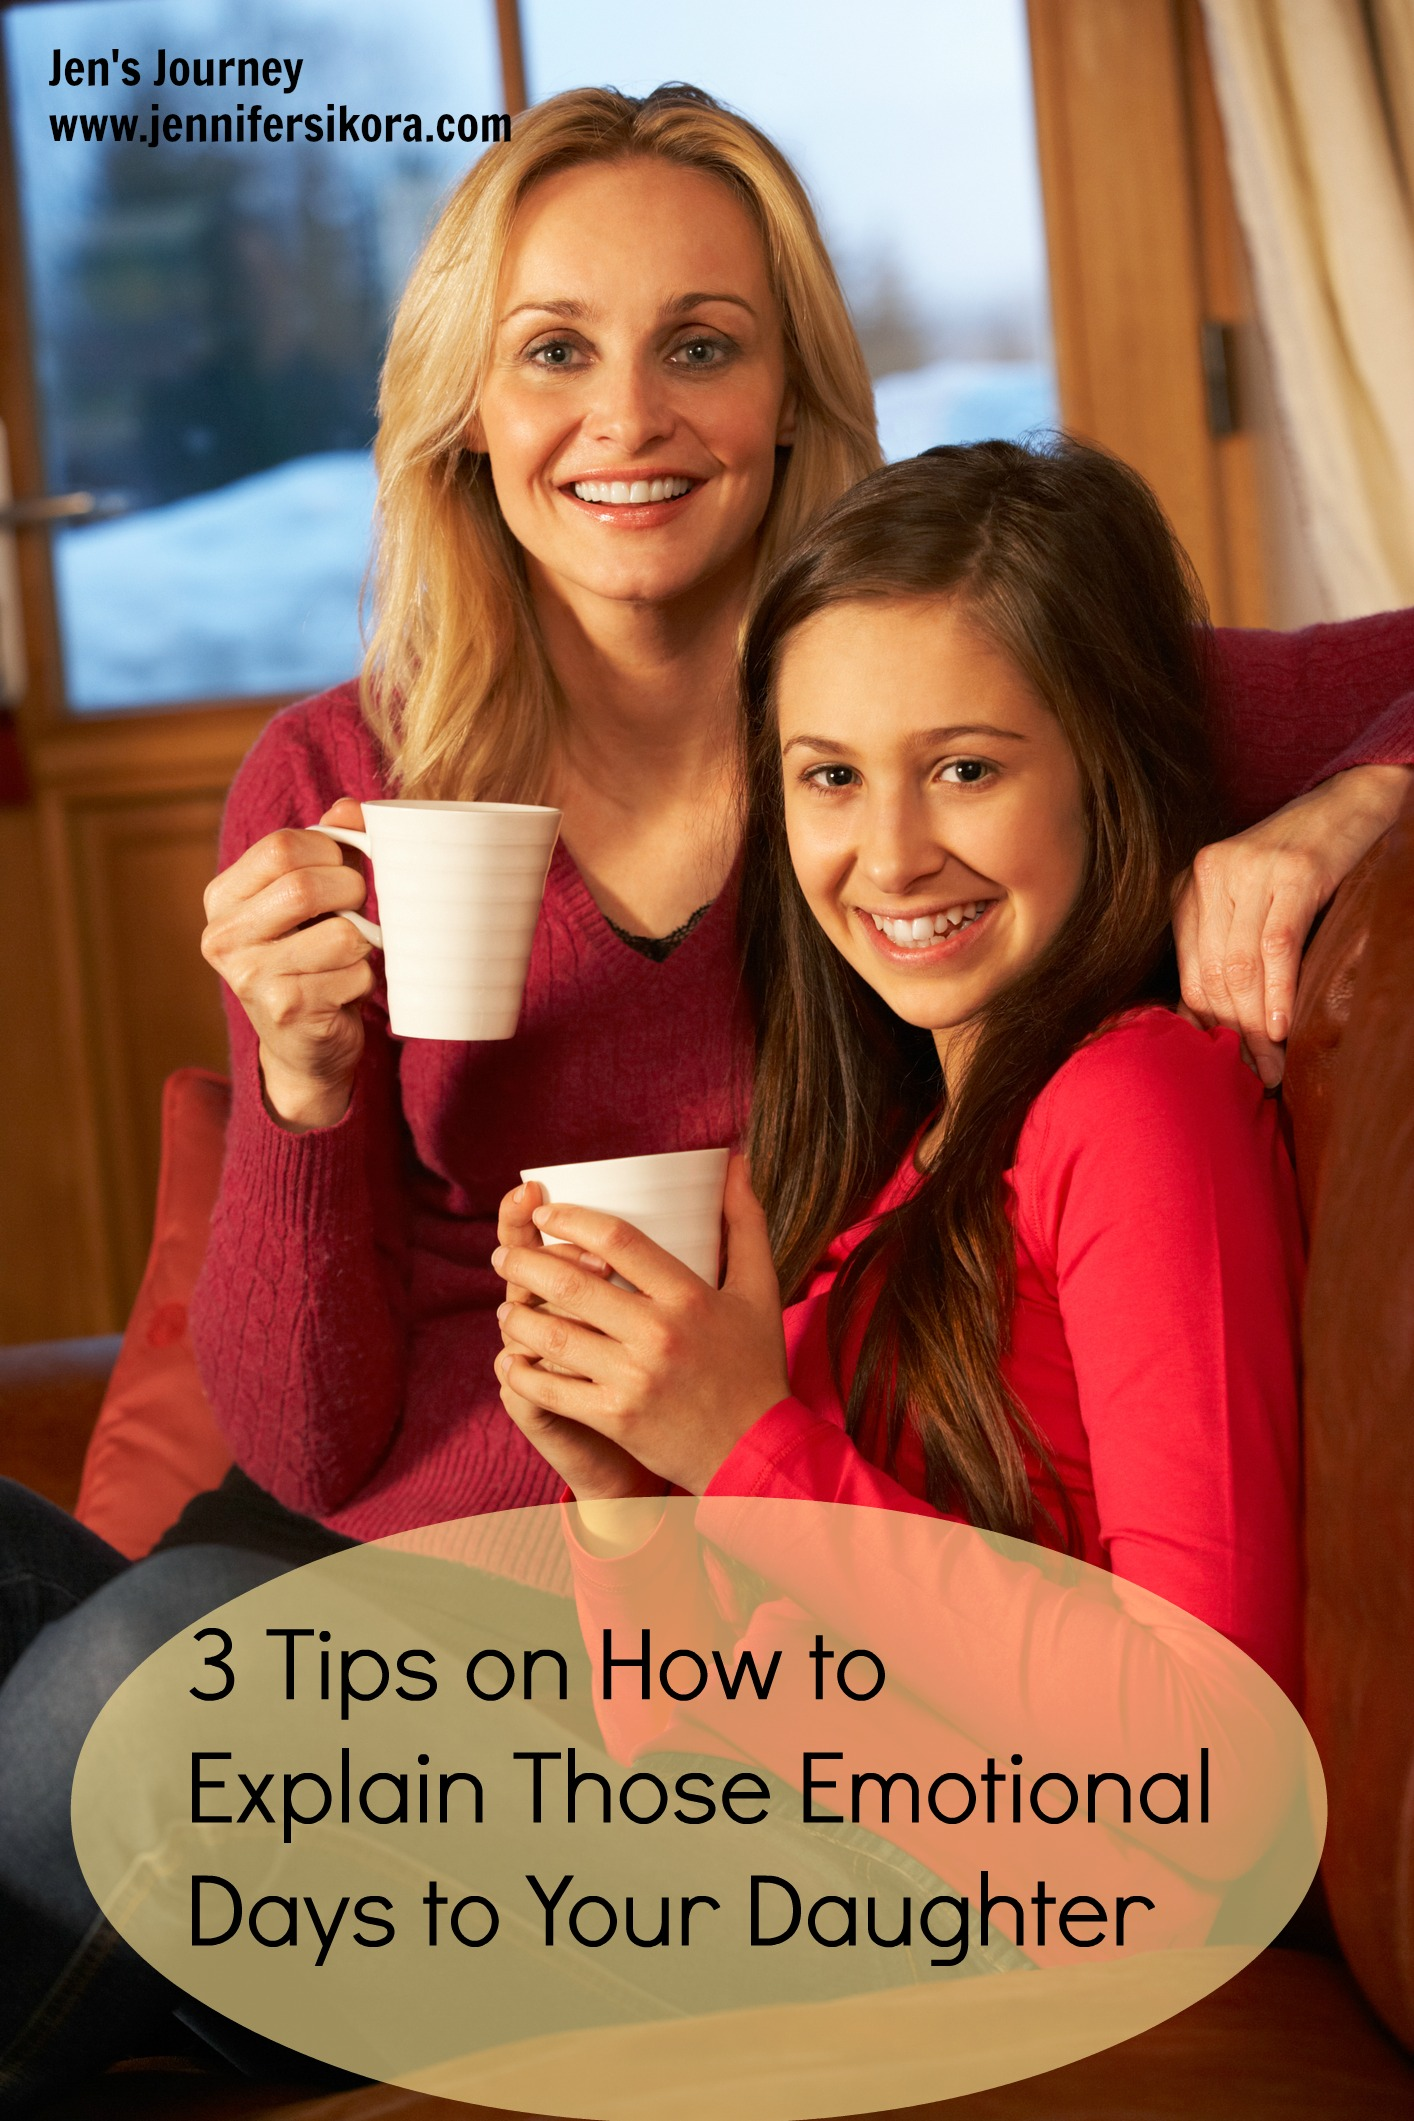 3 Tips on Explaining Those Emotional Days to Your Daughter #ad